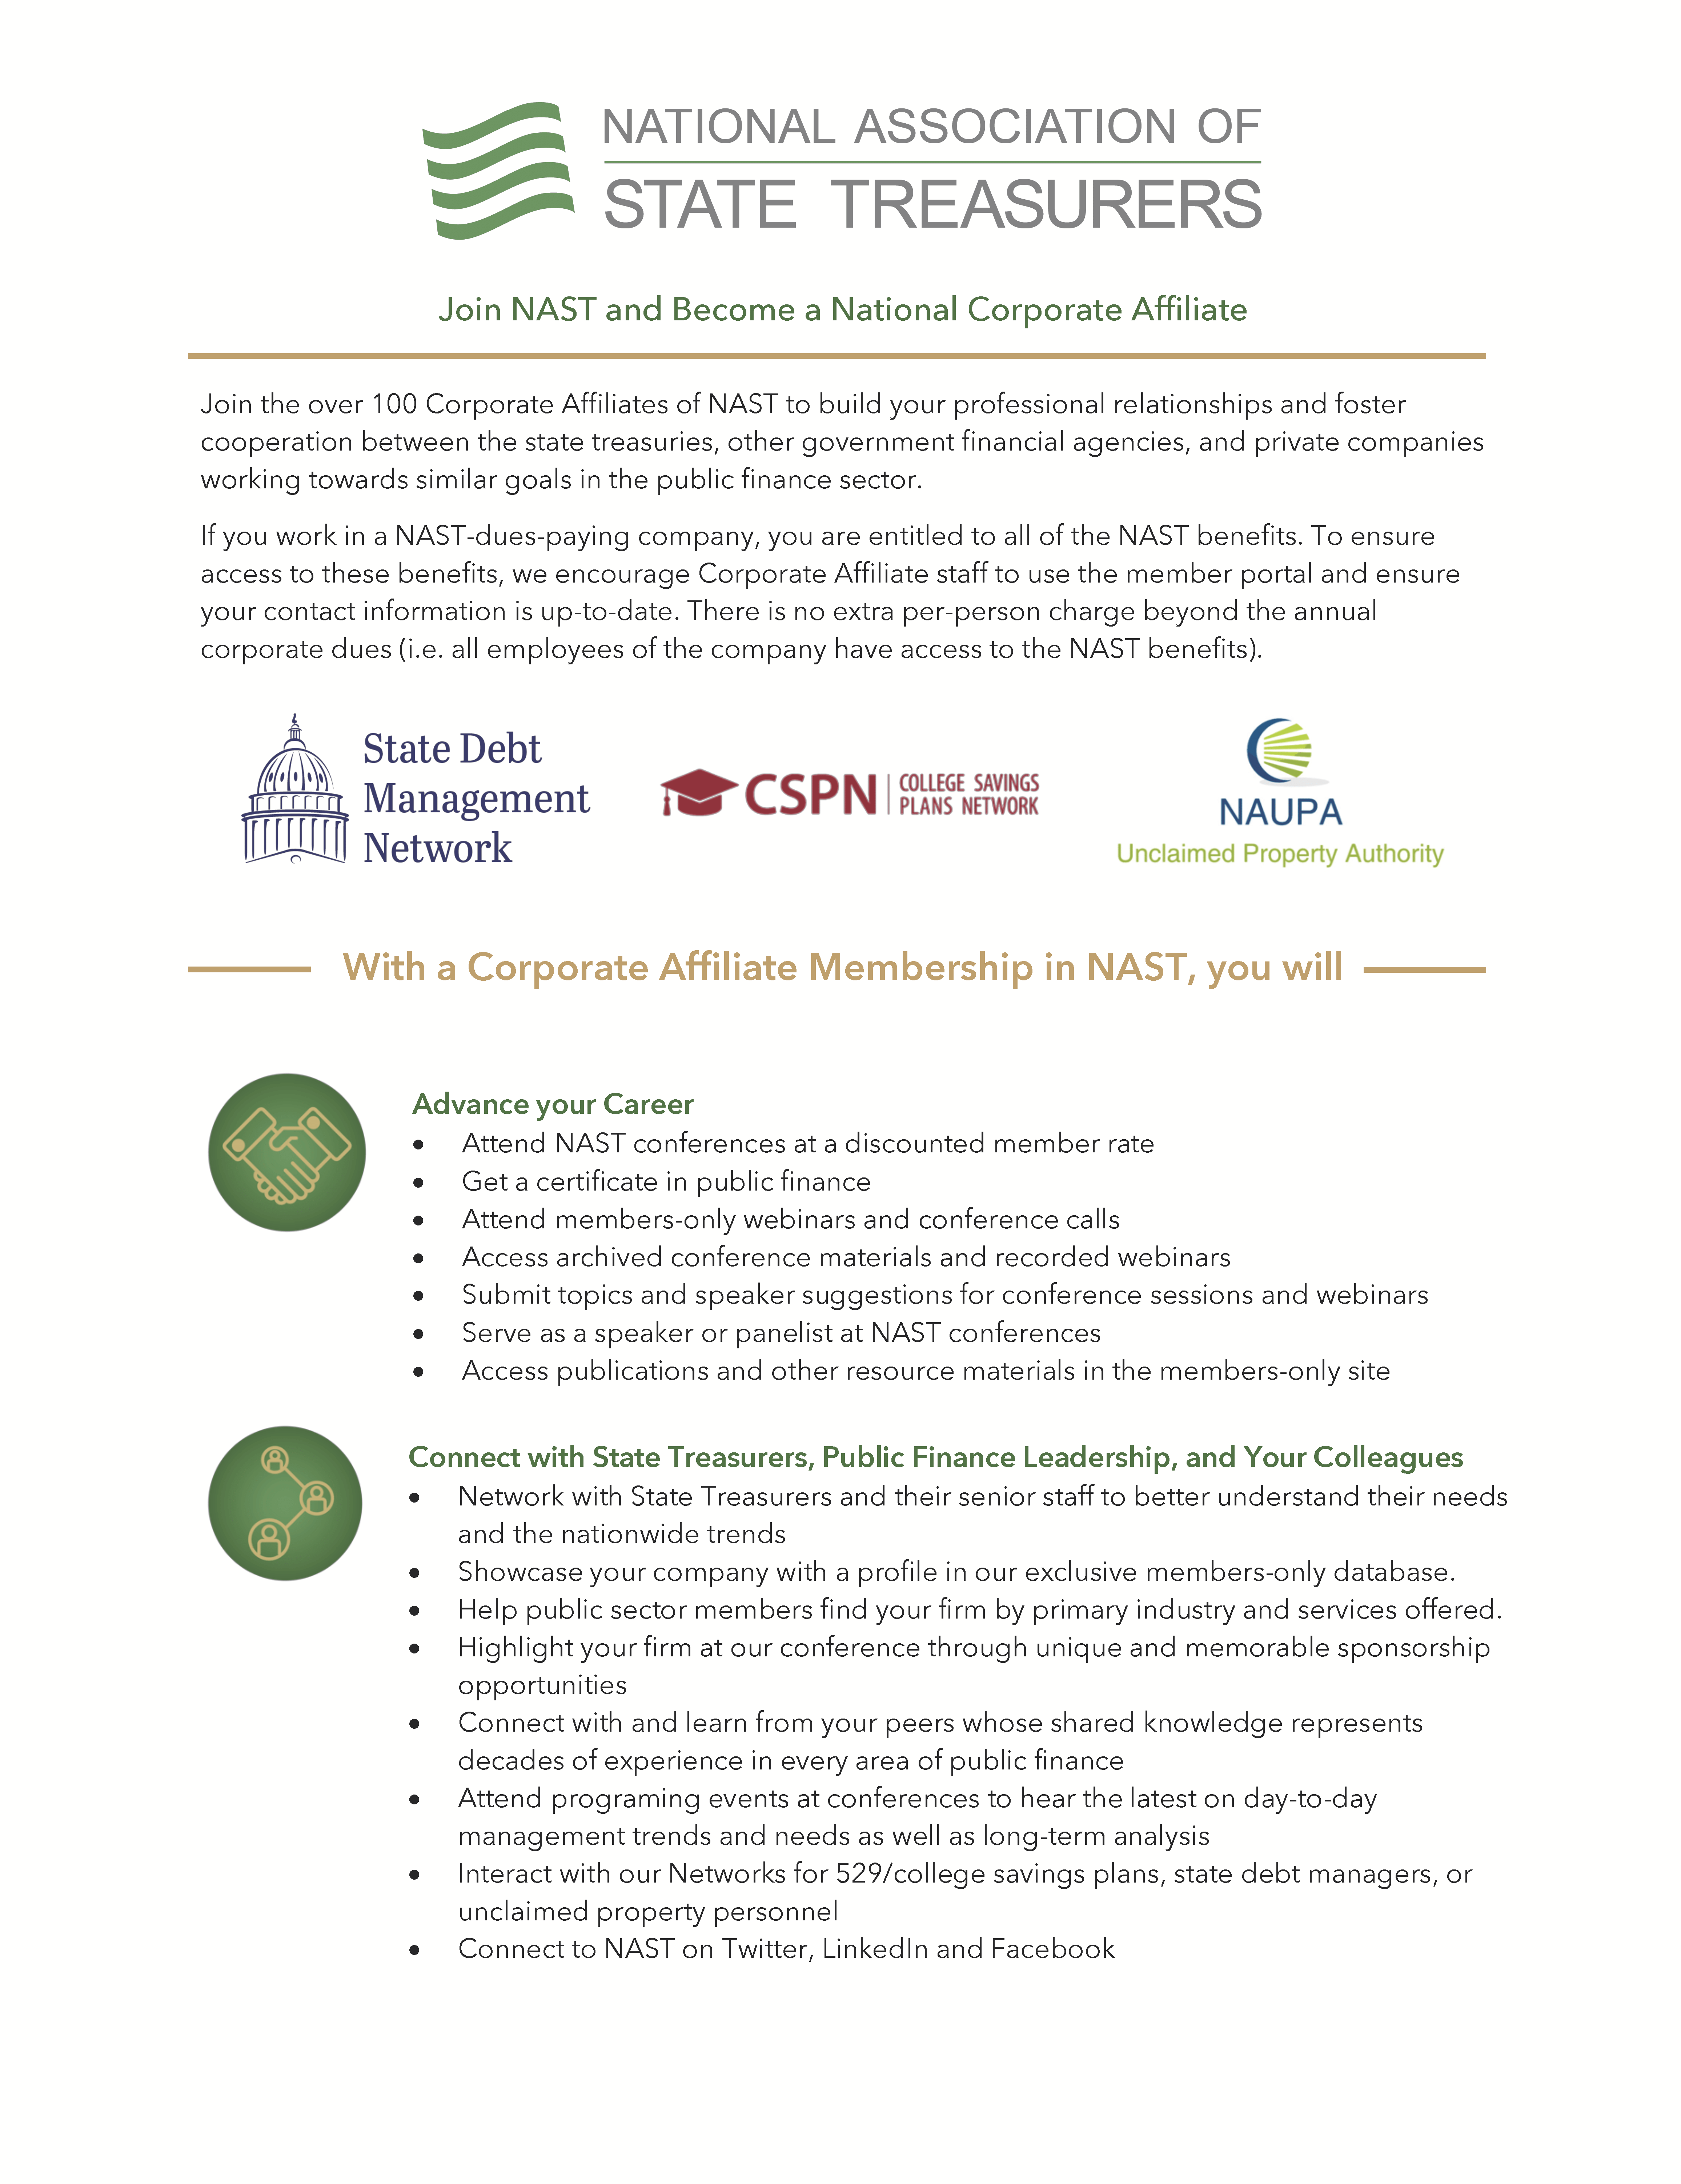 NAST Corporate Affiliate one-pager